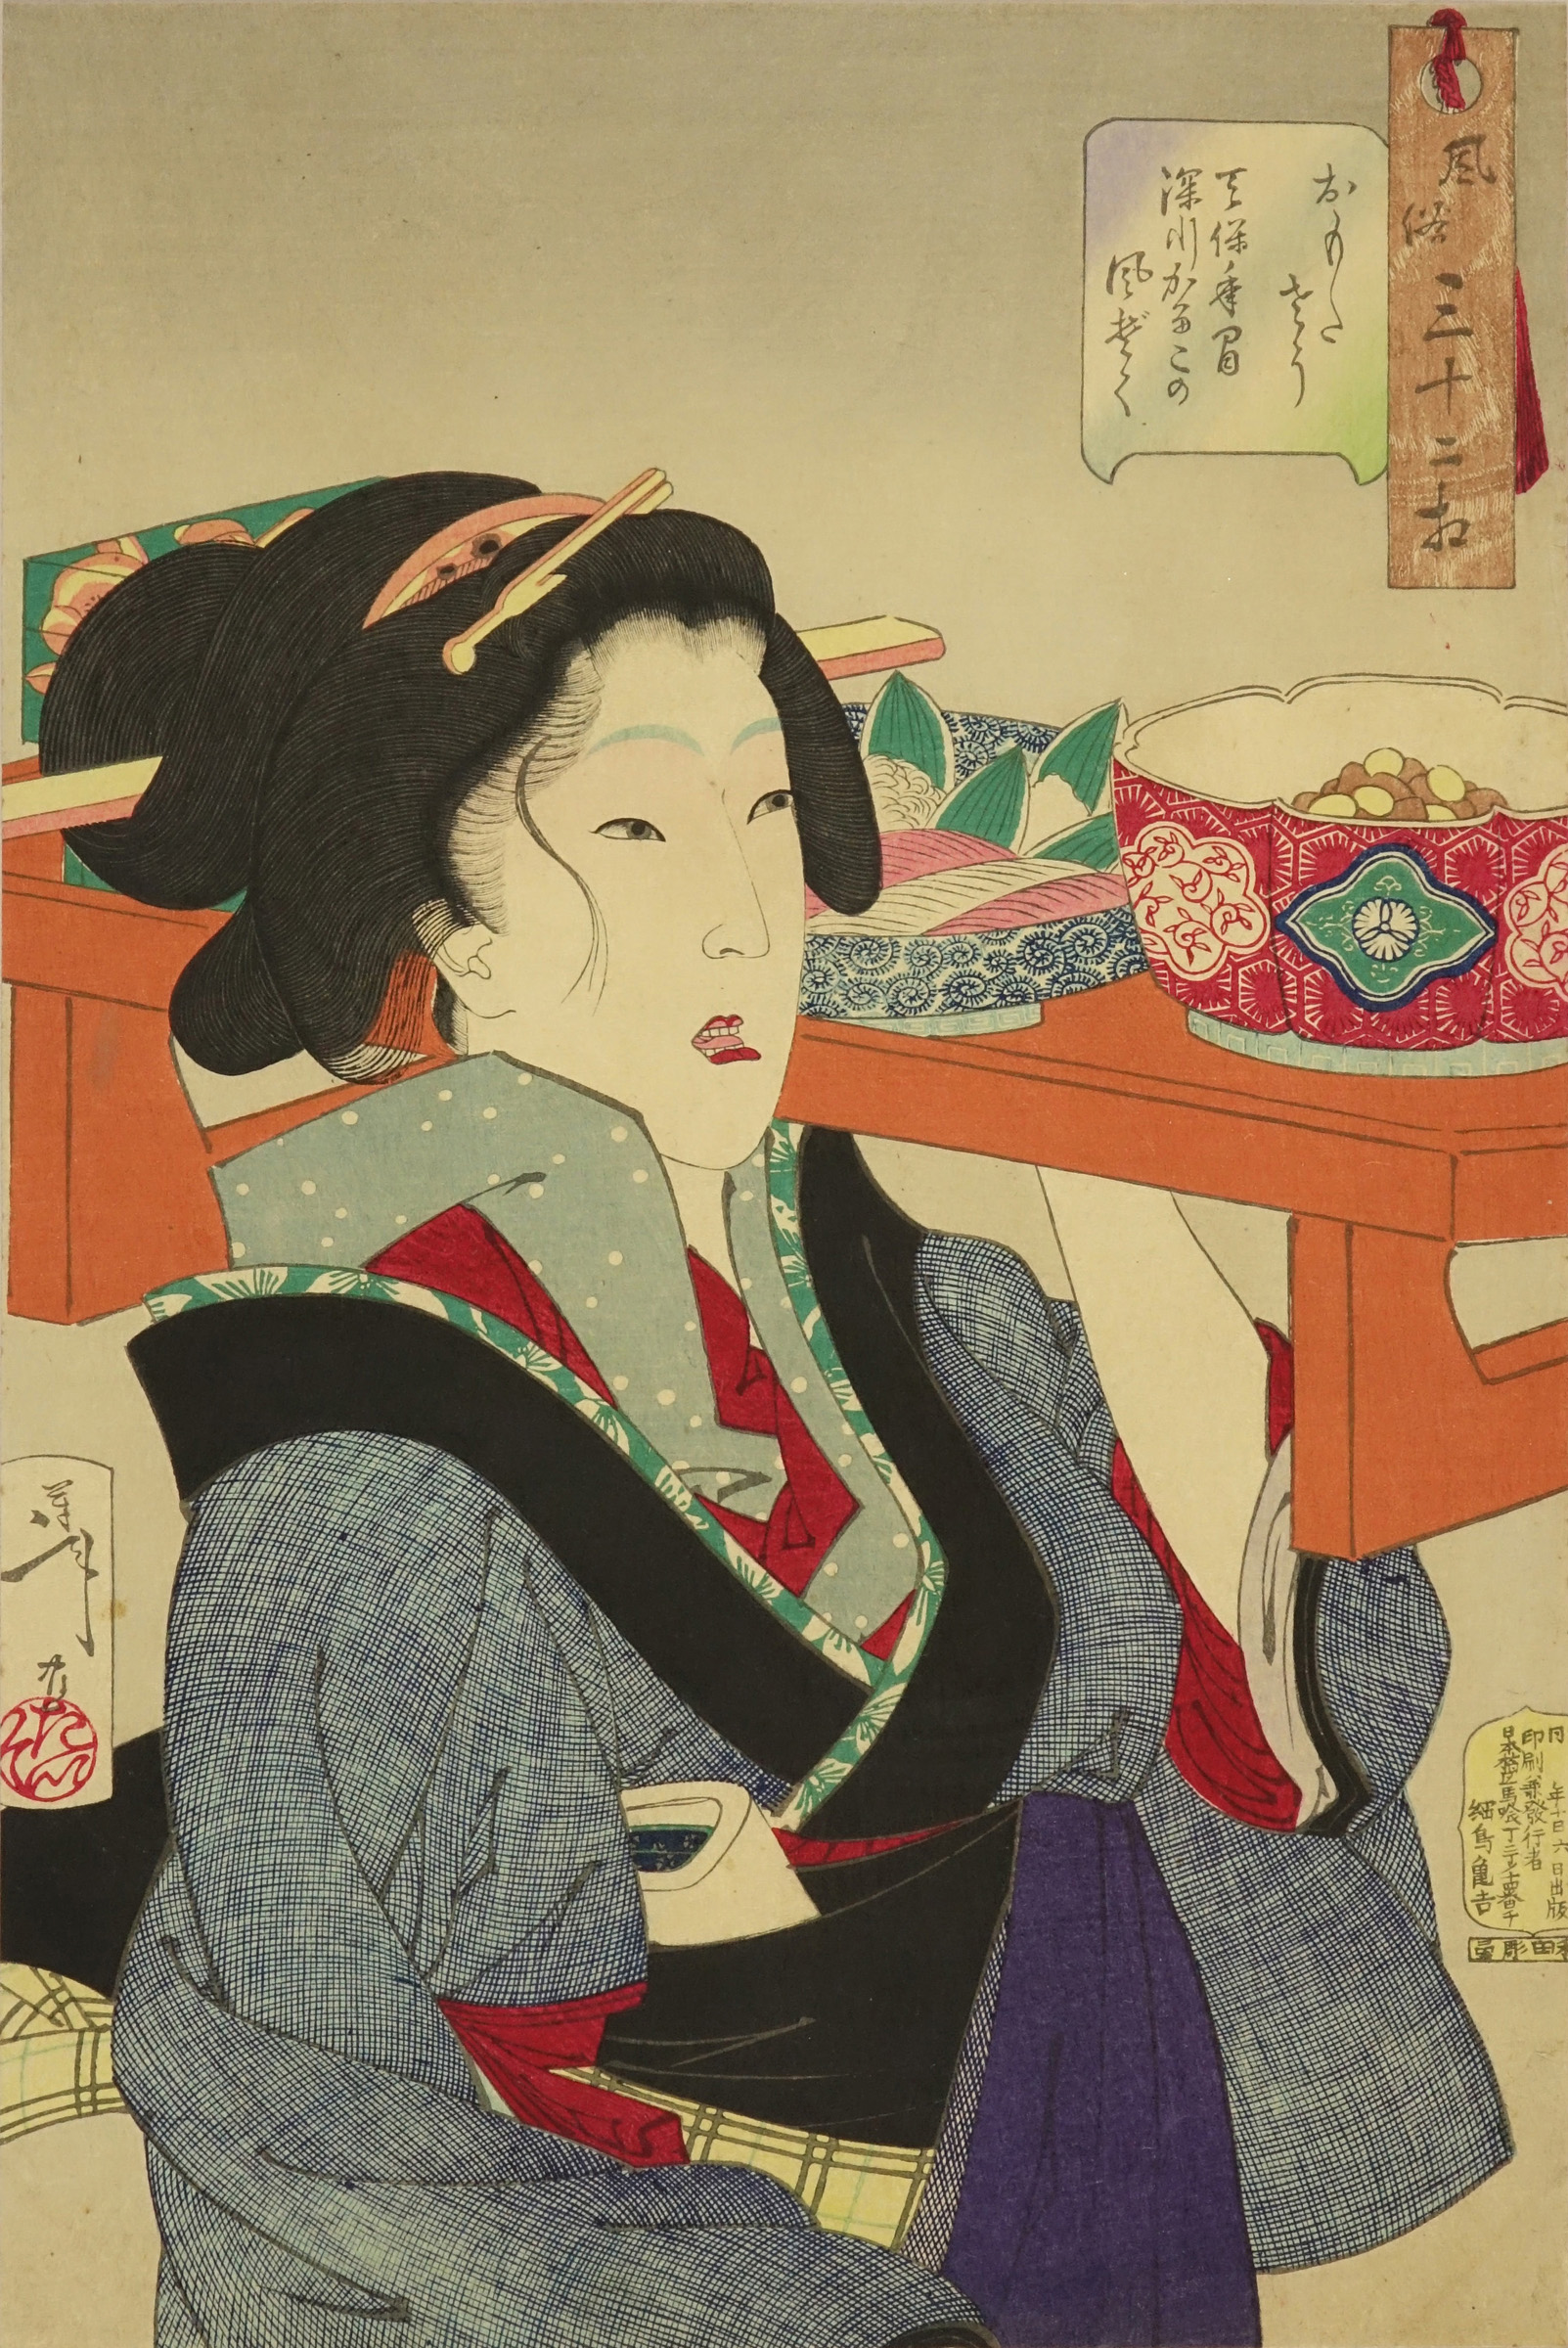 YOSHITOSHI <i>Omotaso</i> (Looking weighed-down), from <i>Fuzoku sanjuniso</i> (Thirty-two aspect of customs and manners), first state